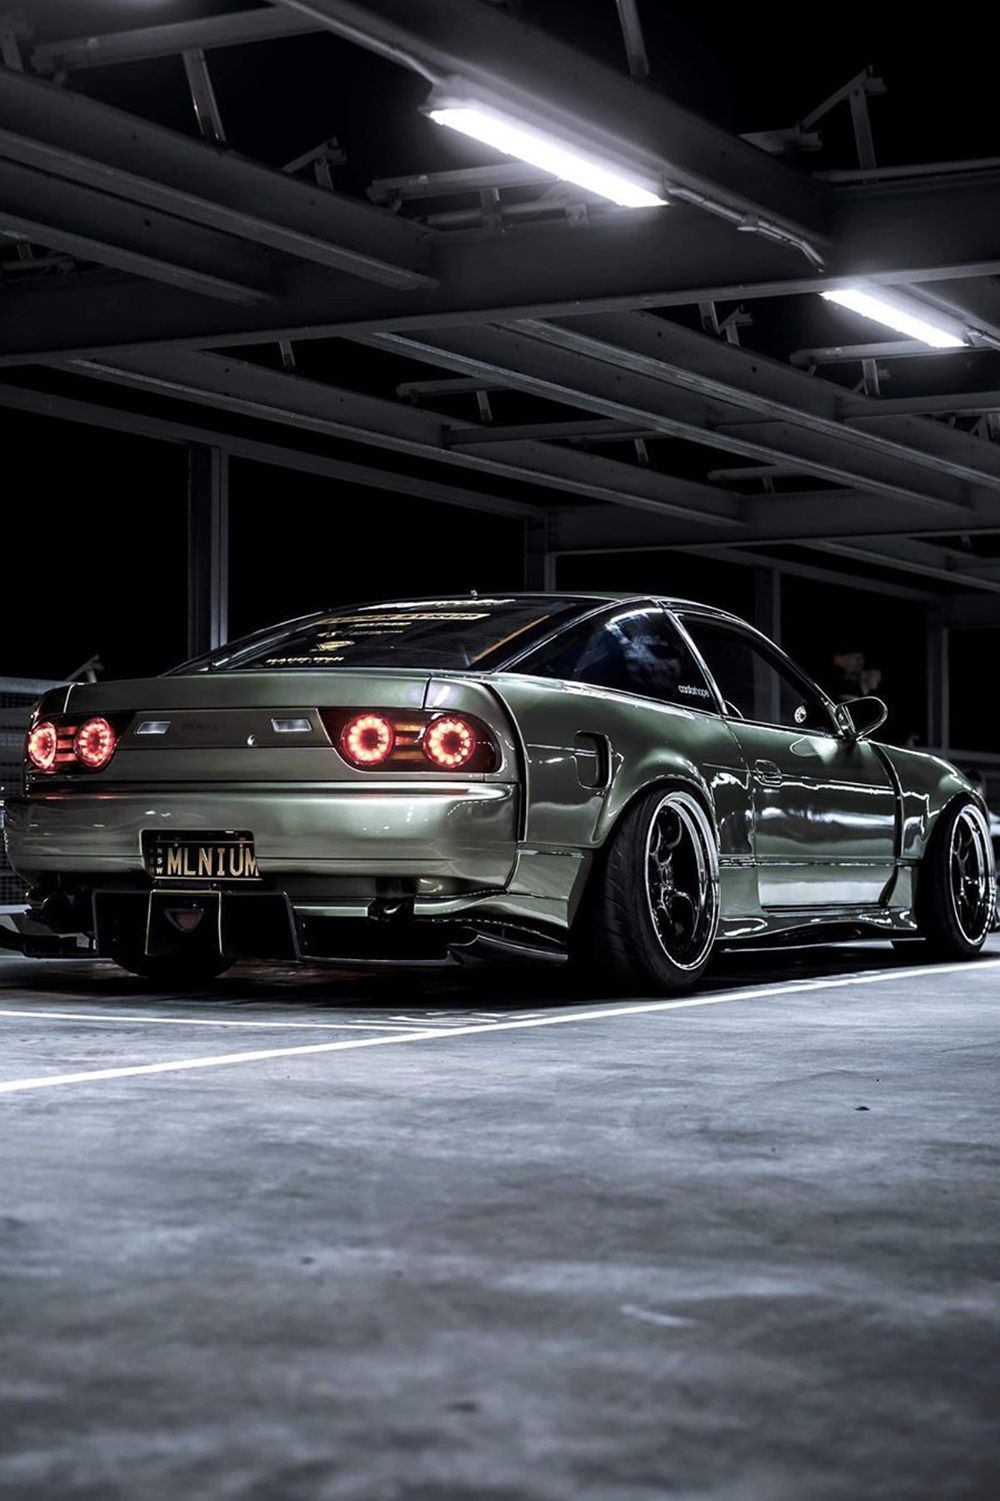 Clean Nissan S13 Wide Body Custom (With images) Nissan